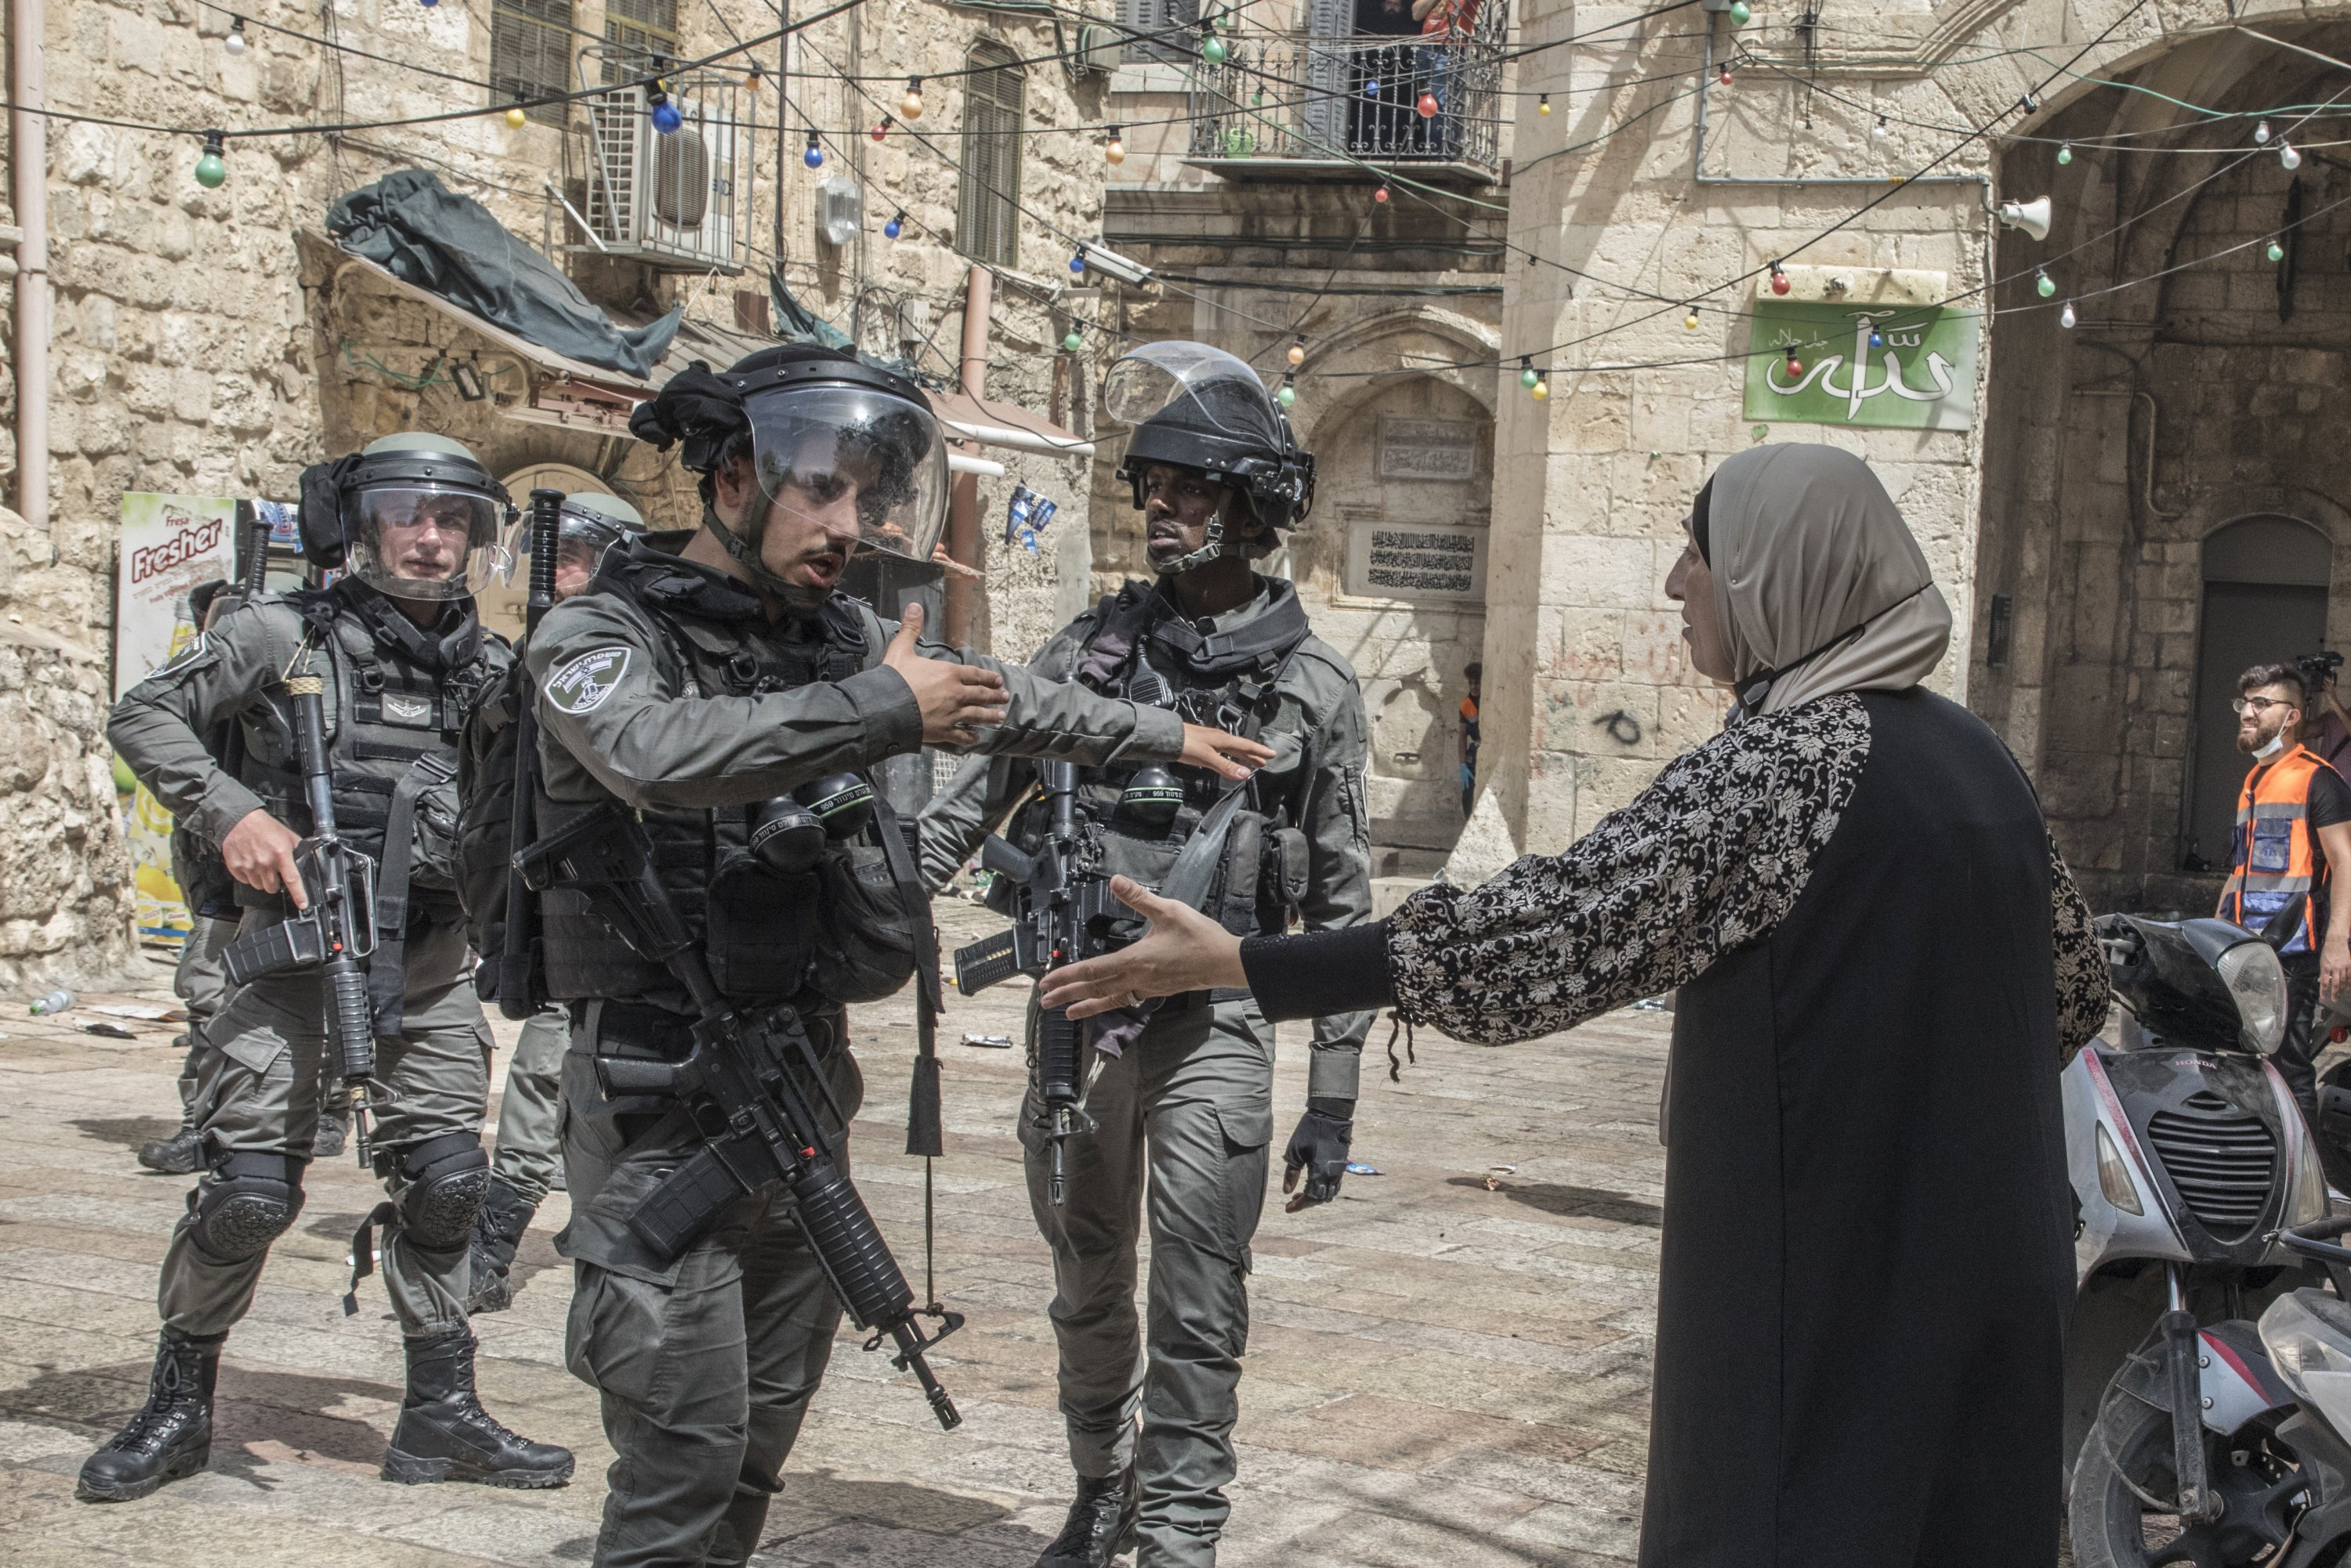 Israeli police argue with a Palestinian woman at the Al-Aqsa compound, in East Jerusalem, occupied Palestine, May 10, 2021. (Photo by Getty Images)